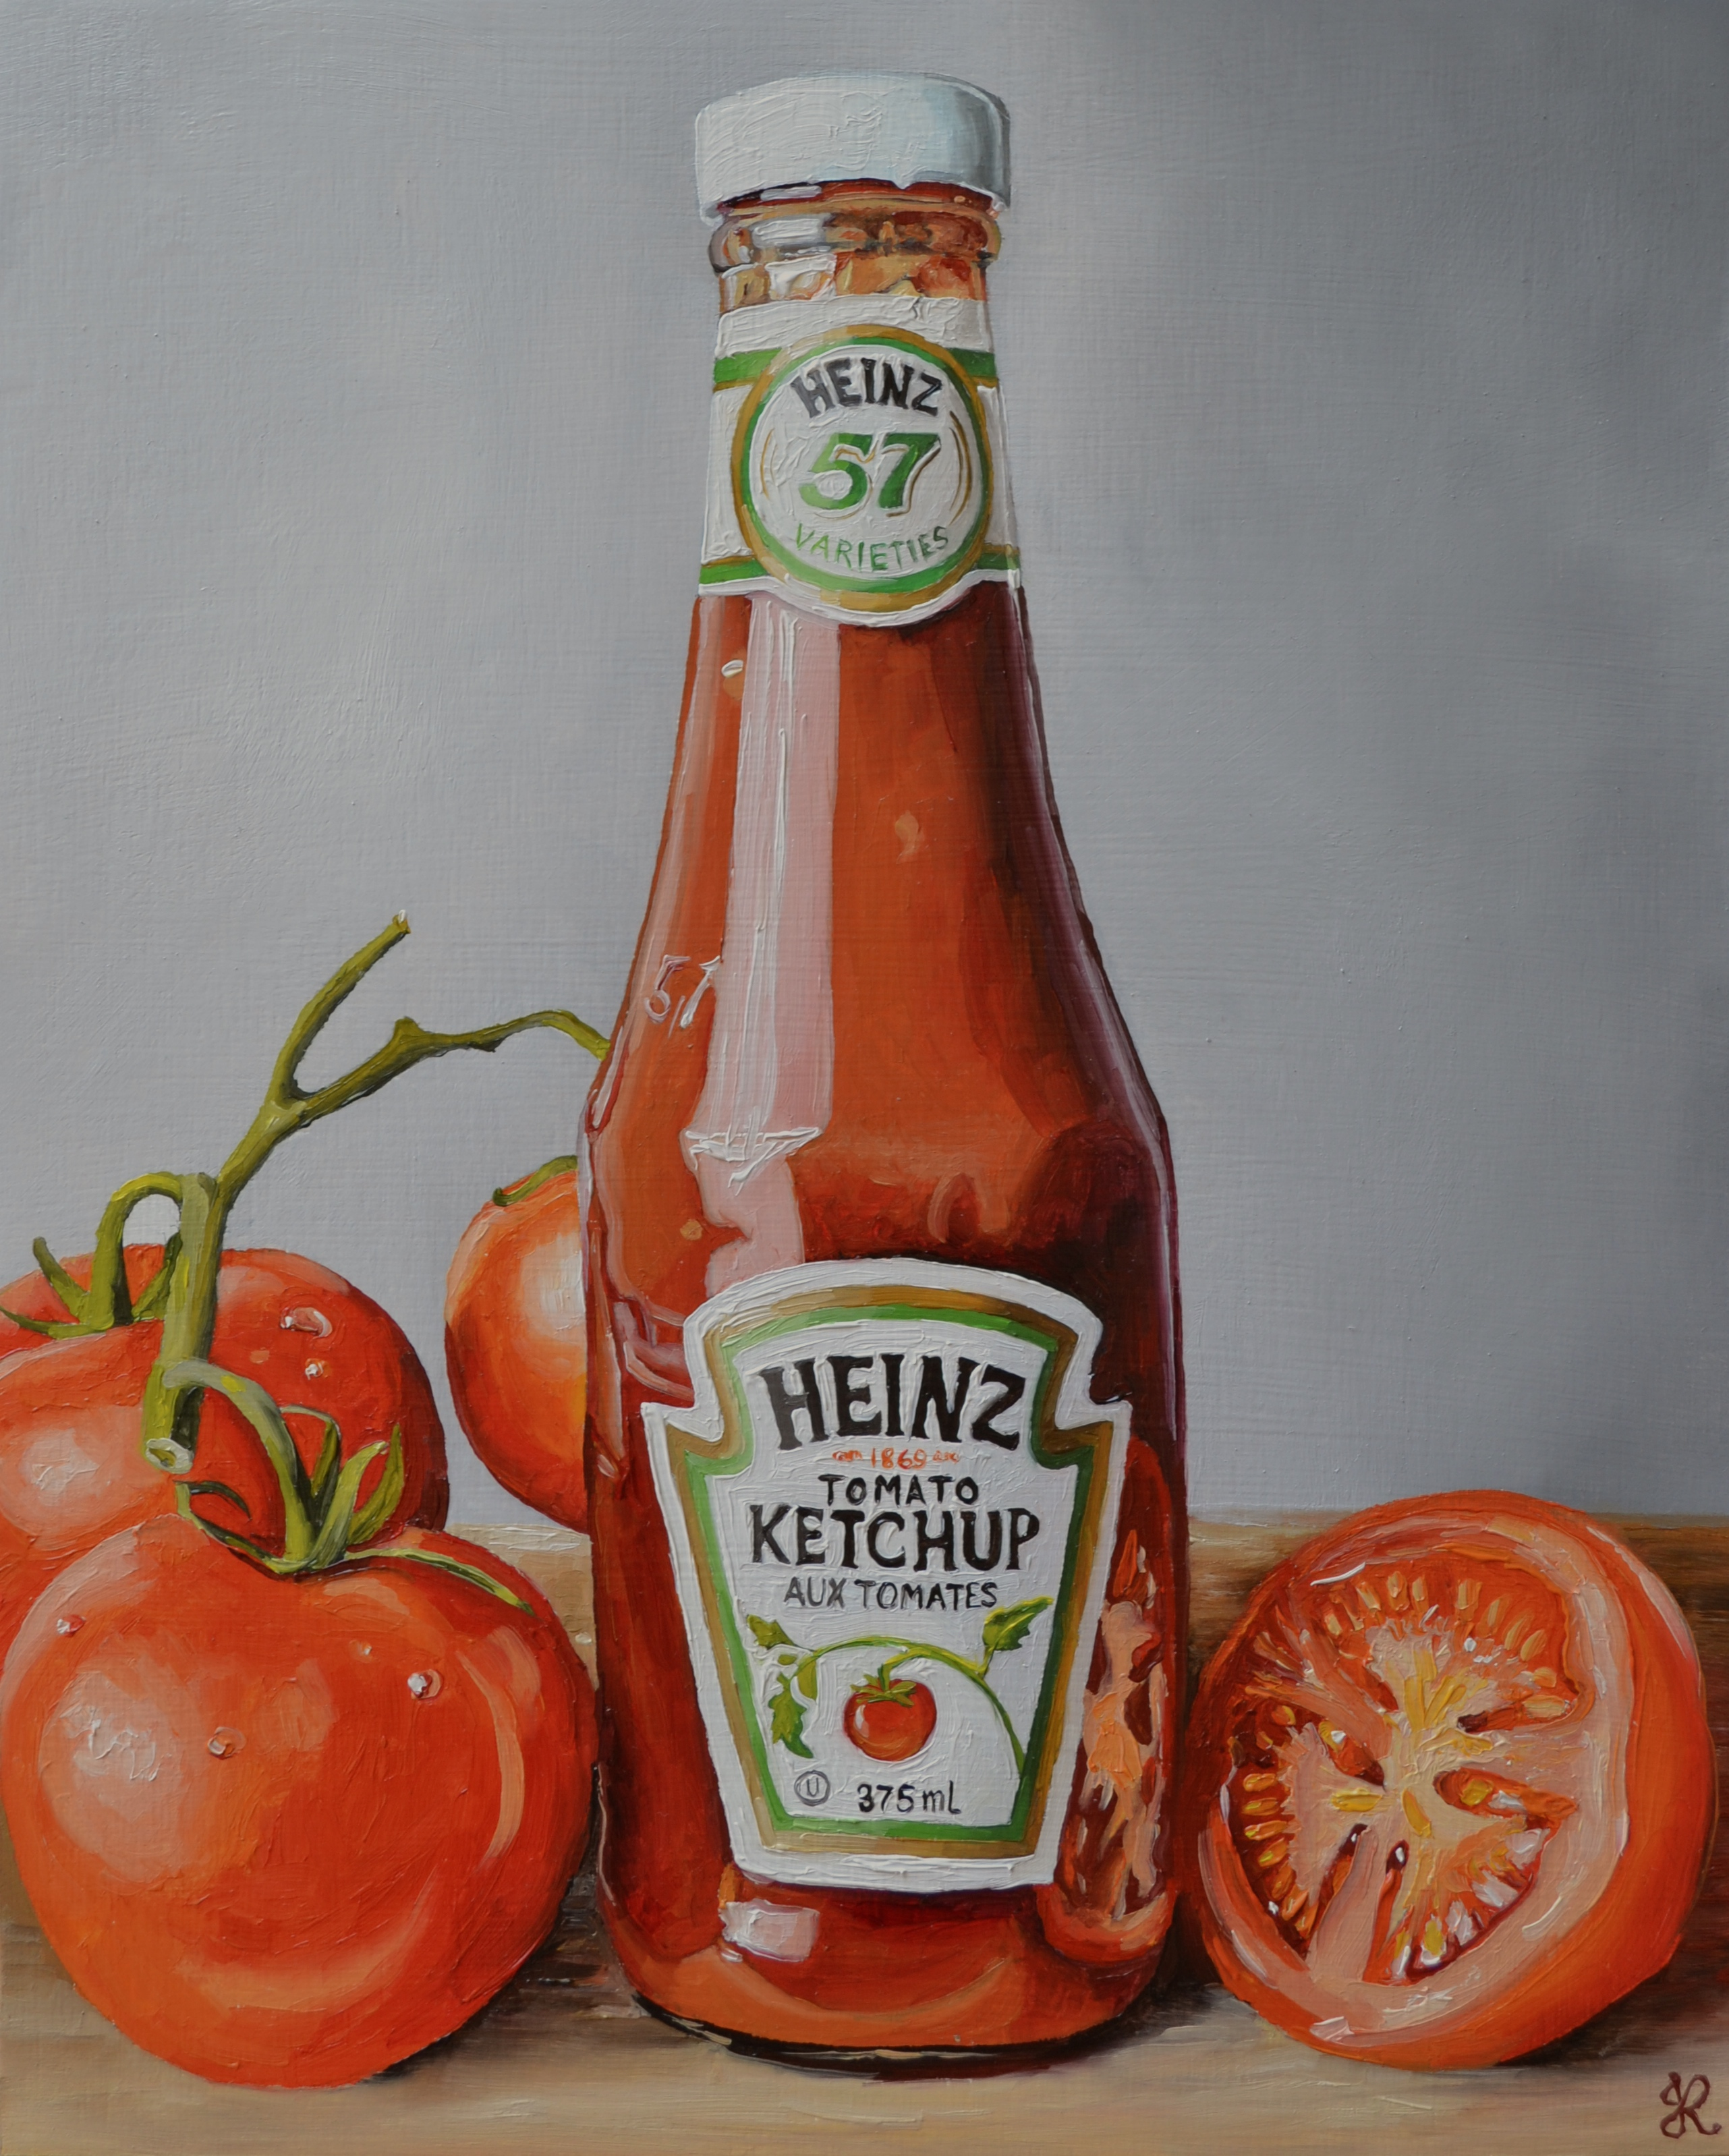 Ketchup and tomatoes